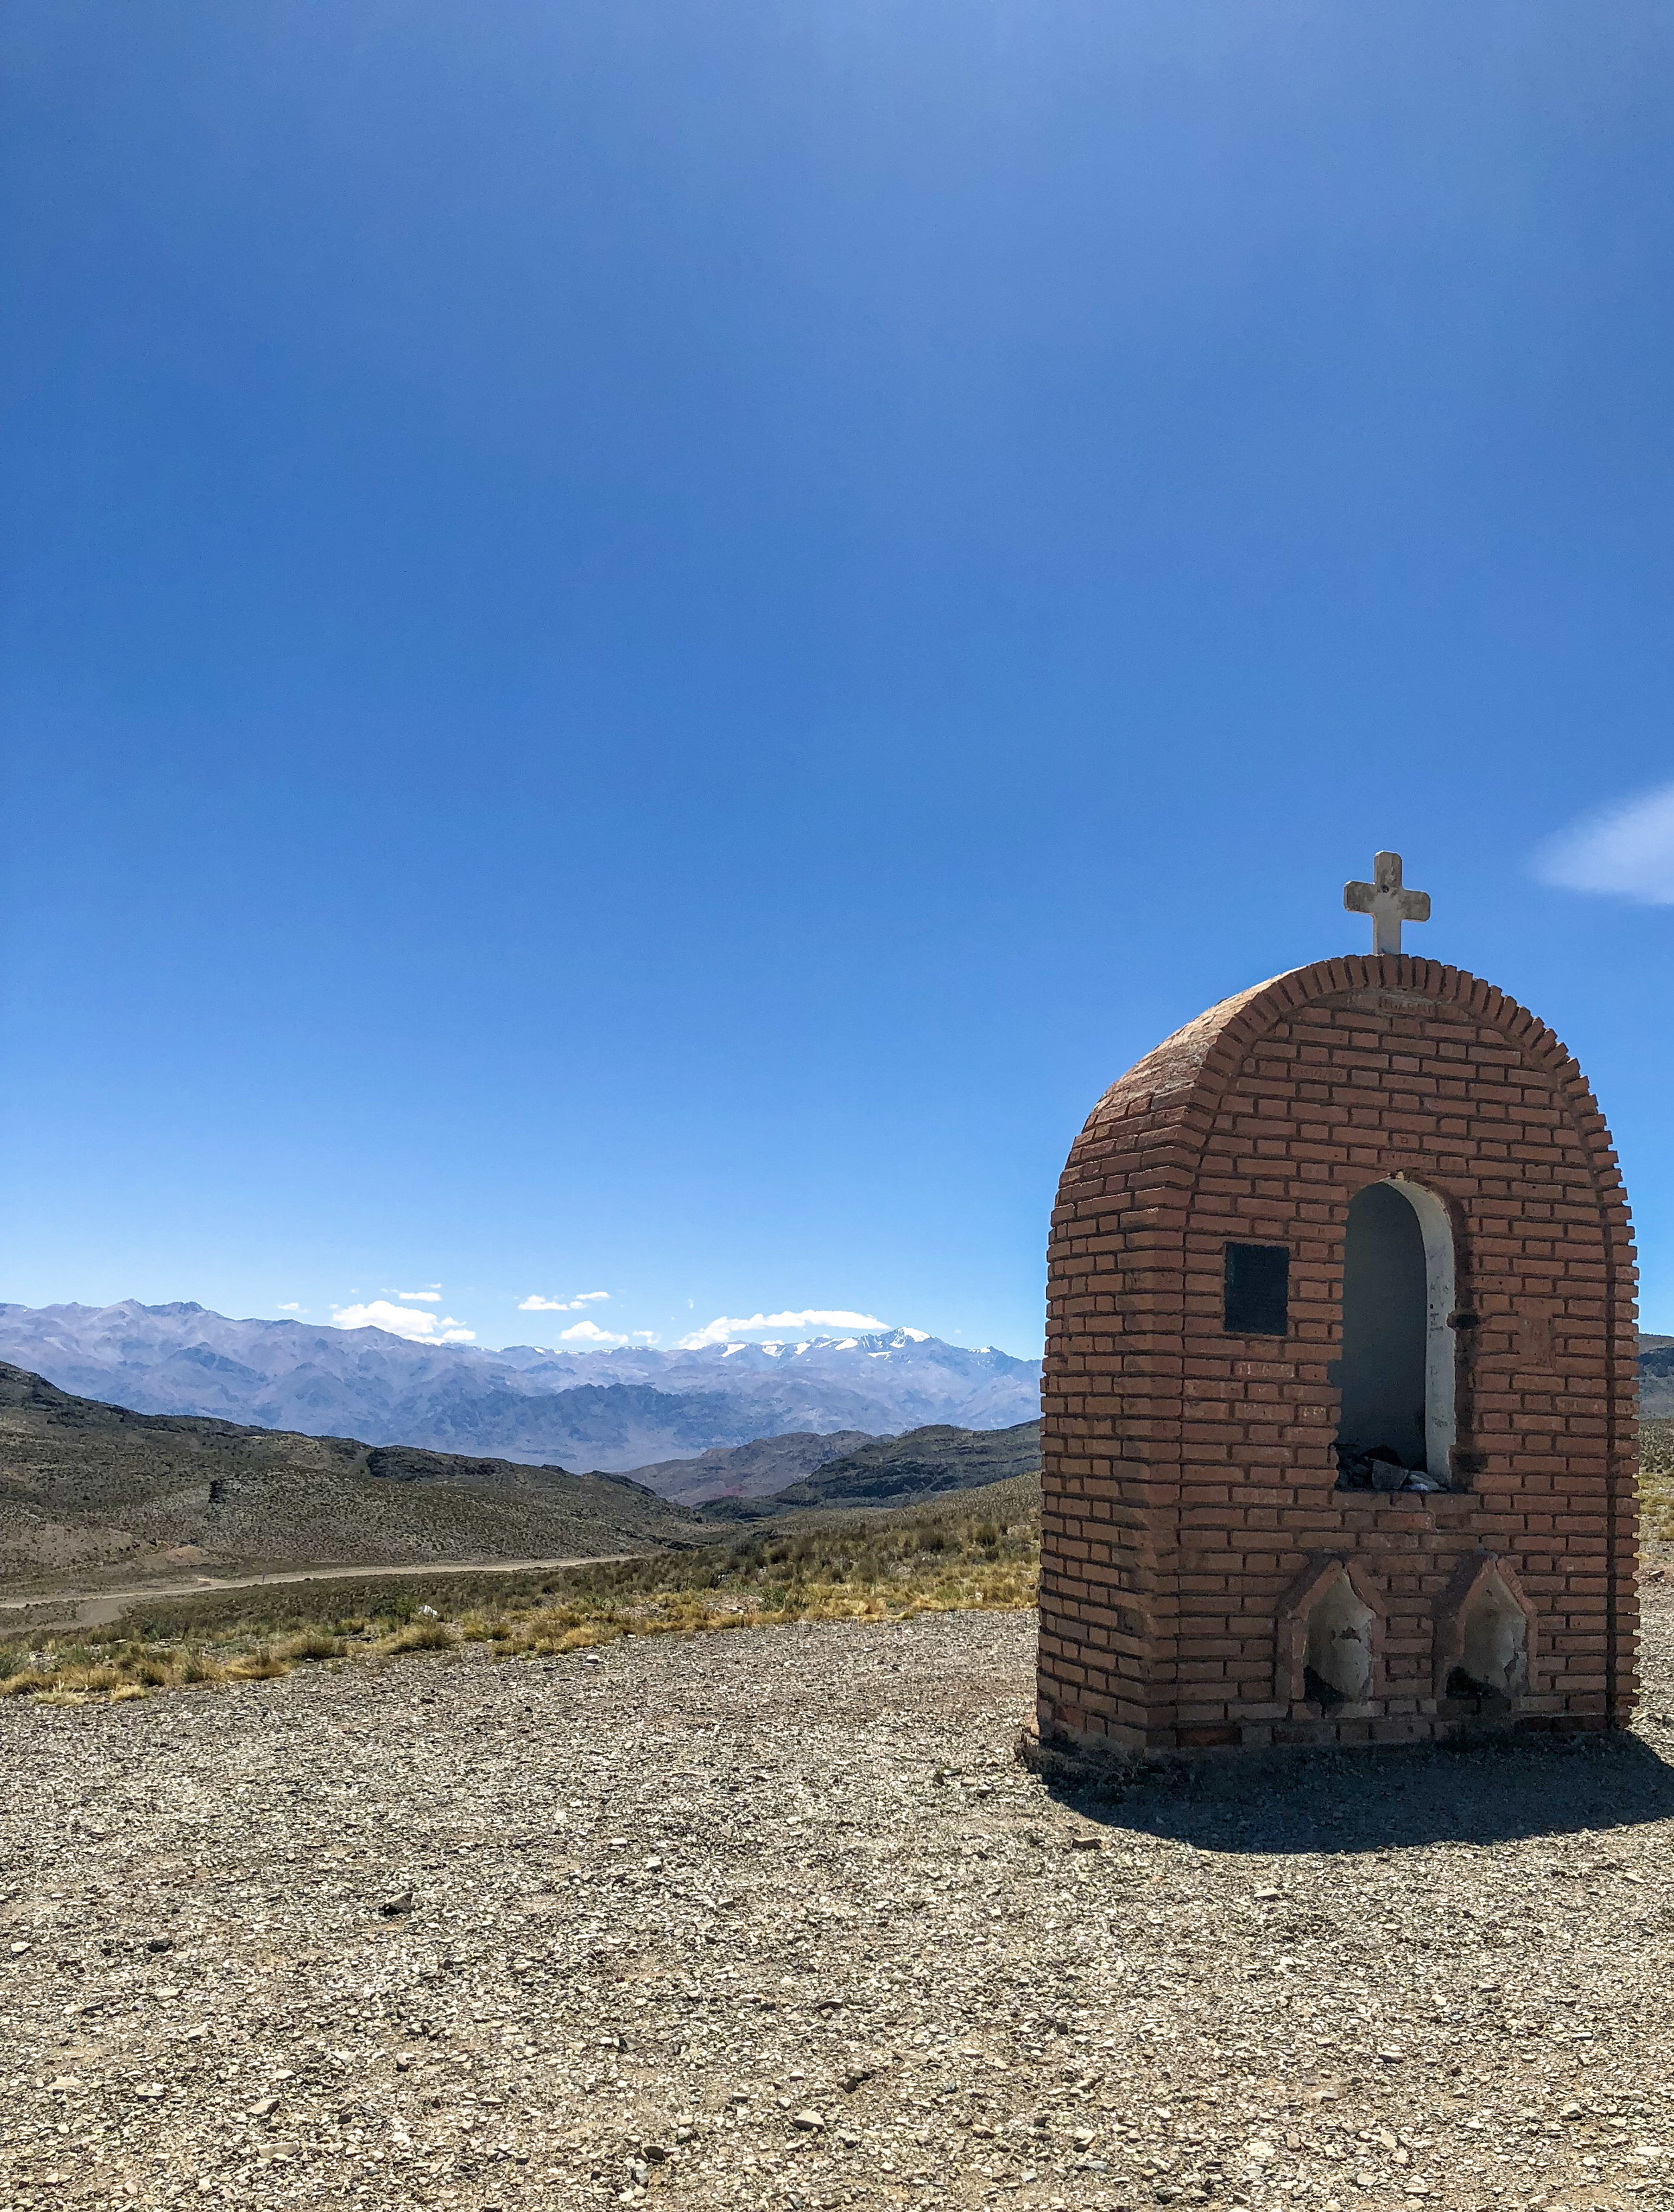 Look out for Cruz De Paramillos. This is the one place you can see Aconcagua, the highest peak in the Andes mountain range.